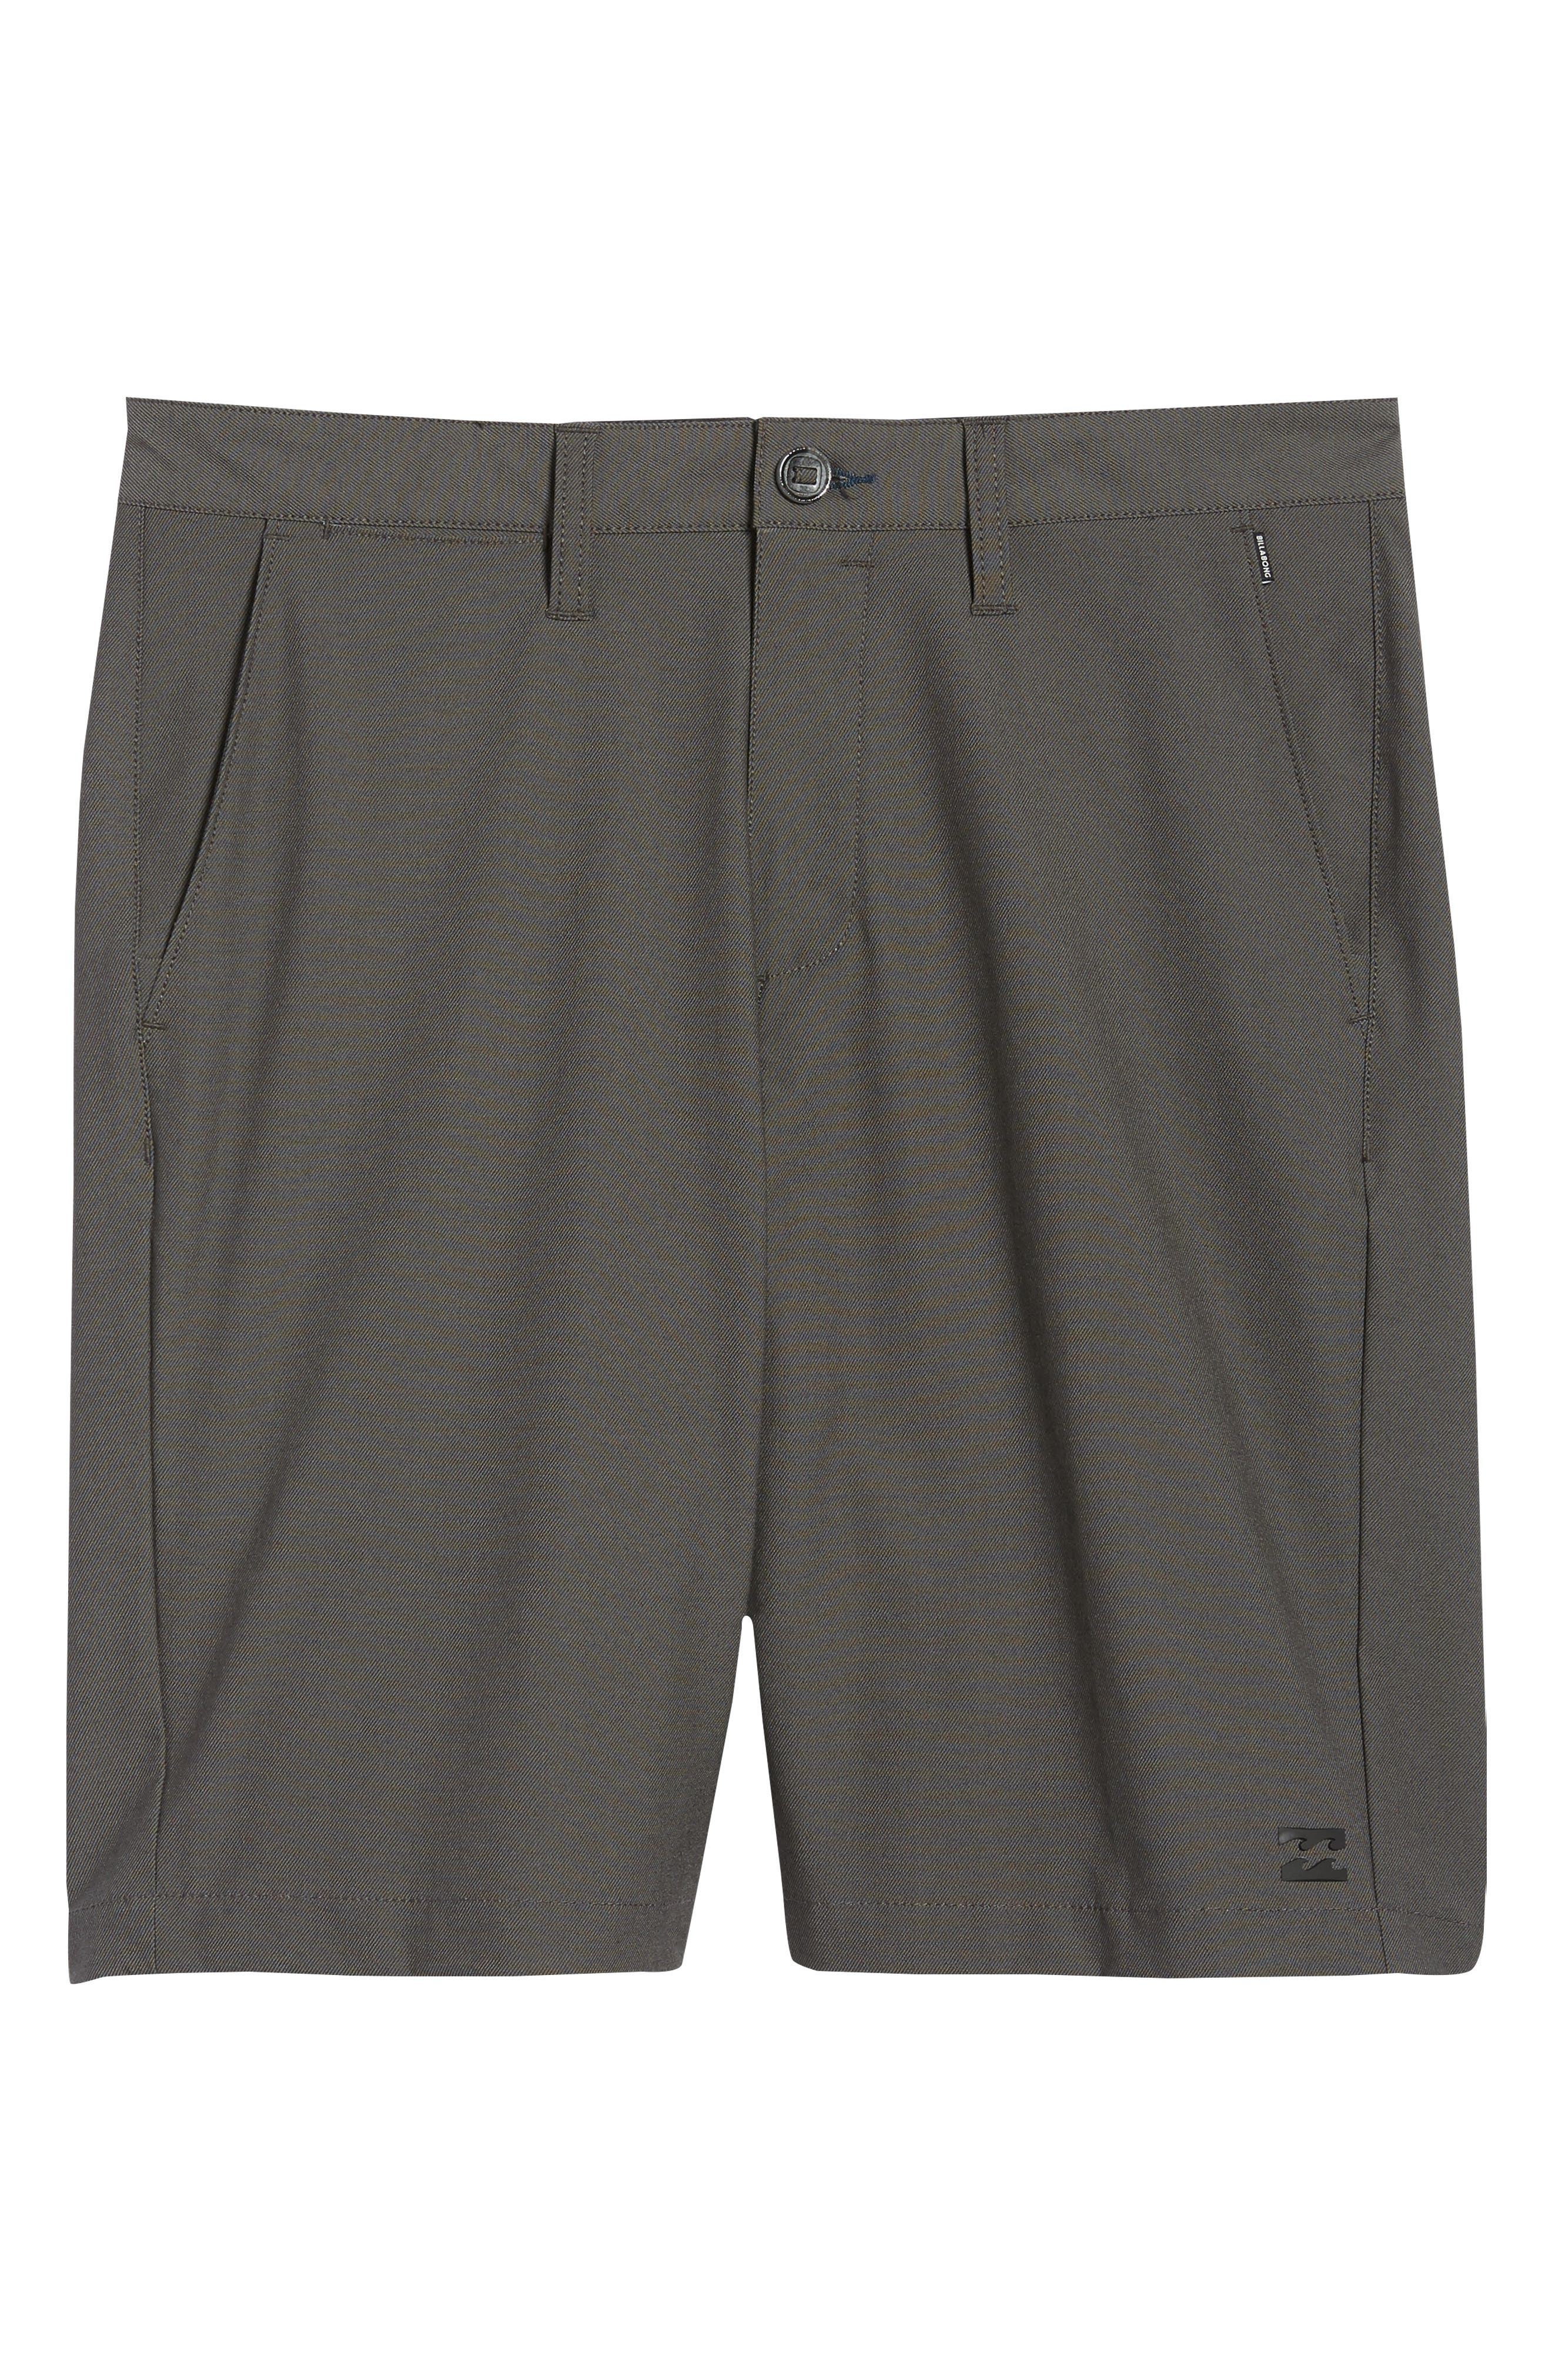 Crossfire X Submersible Twill Shorts,                             Alternate thumbnail 6, color,                             Black